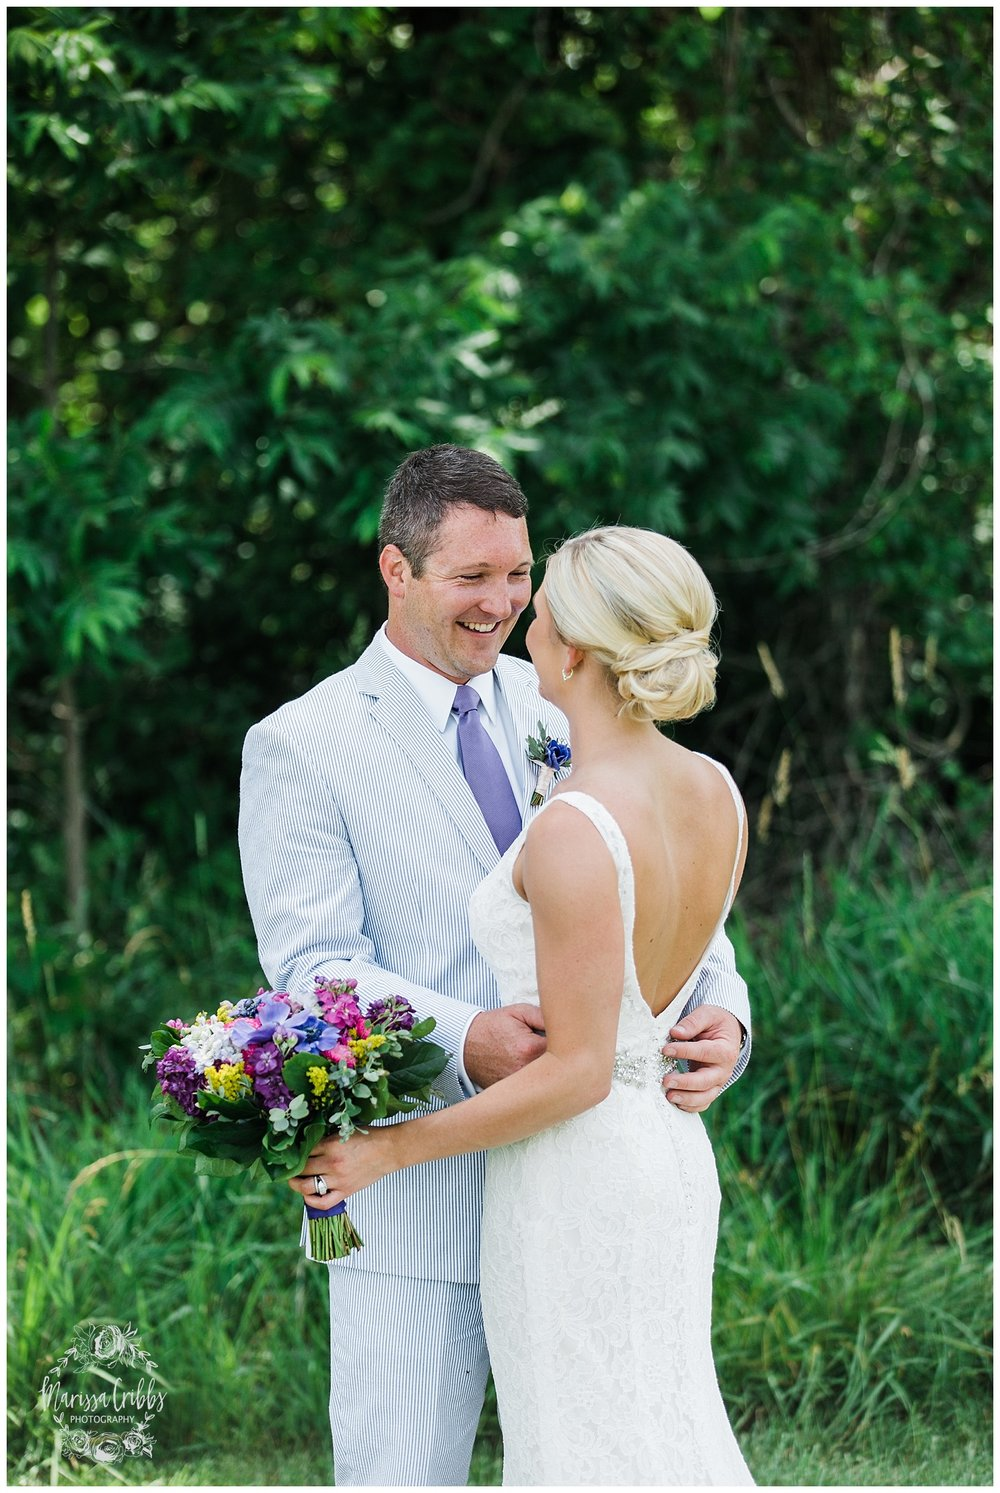 ALLISON & KEVIN WEDDING AT ST ANDREWS GOLF COURSE | MARISSA CRIBBS PHOTOGRAPHY_1698.jpg